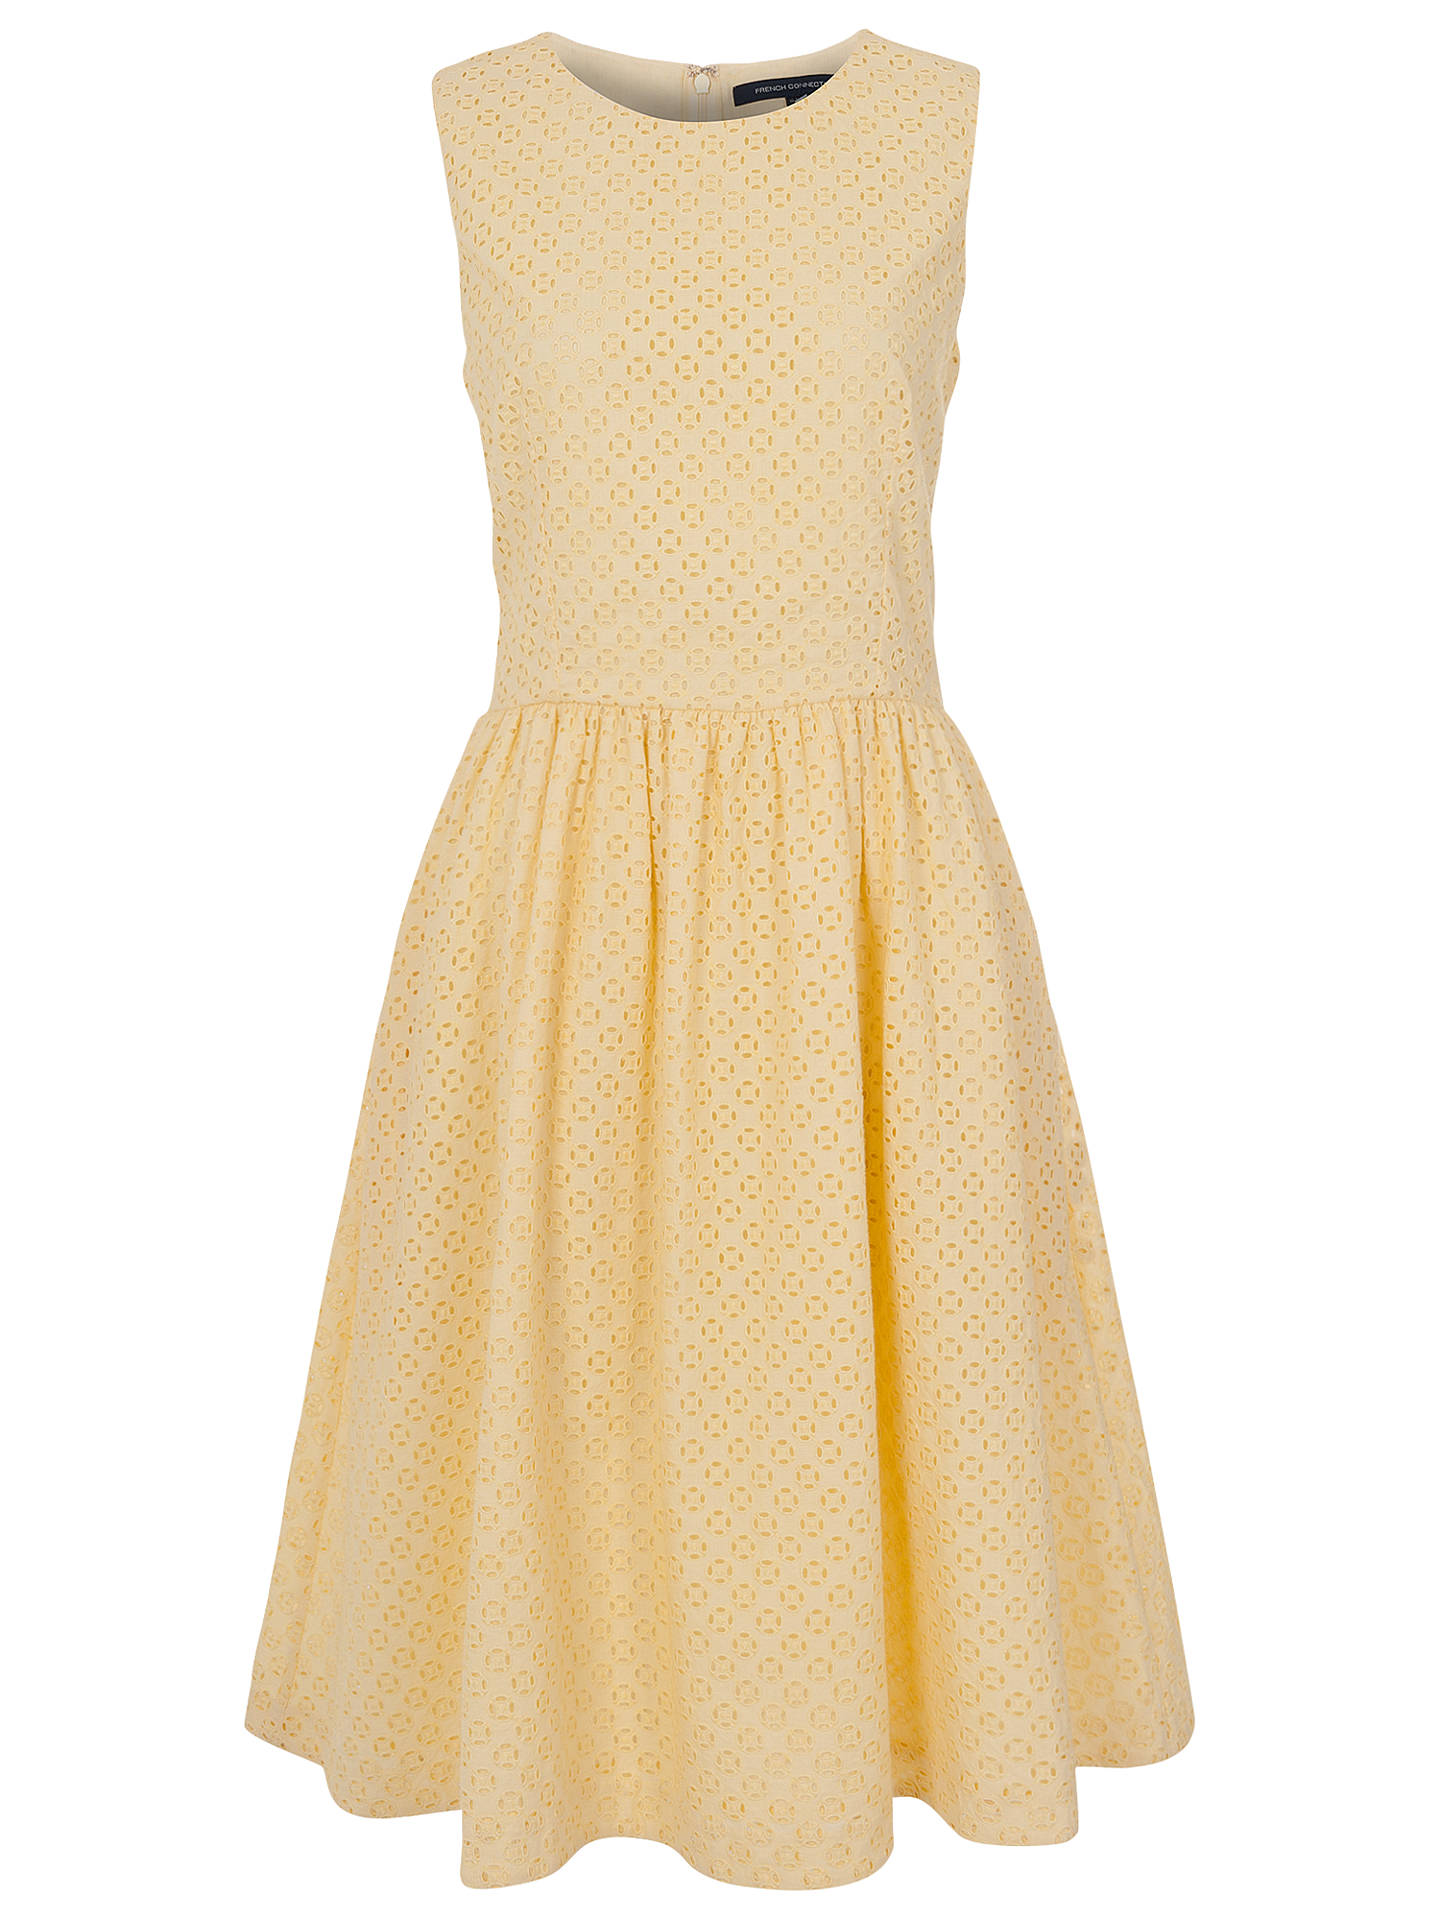 ac3eb0177c Buy French Connection Sunflower Sun Dress